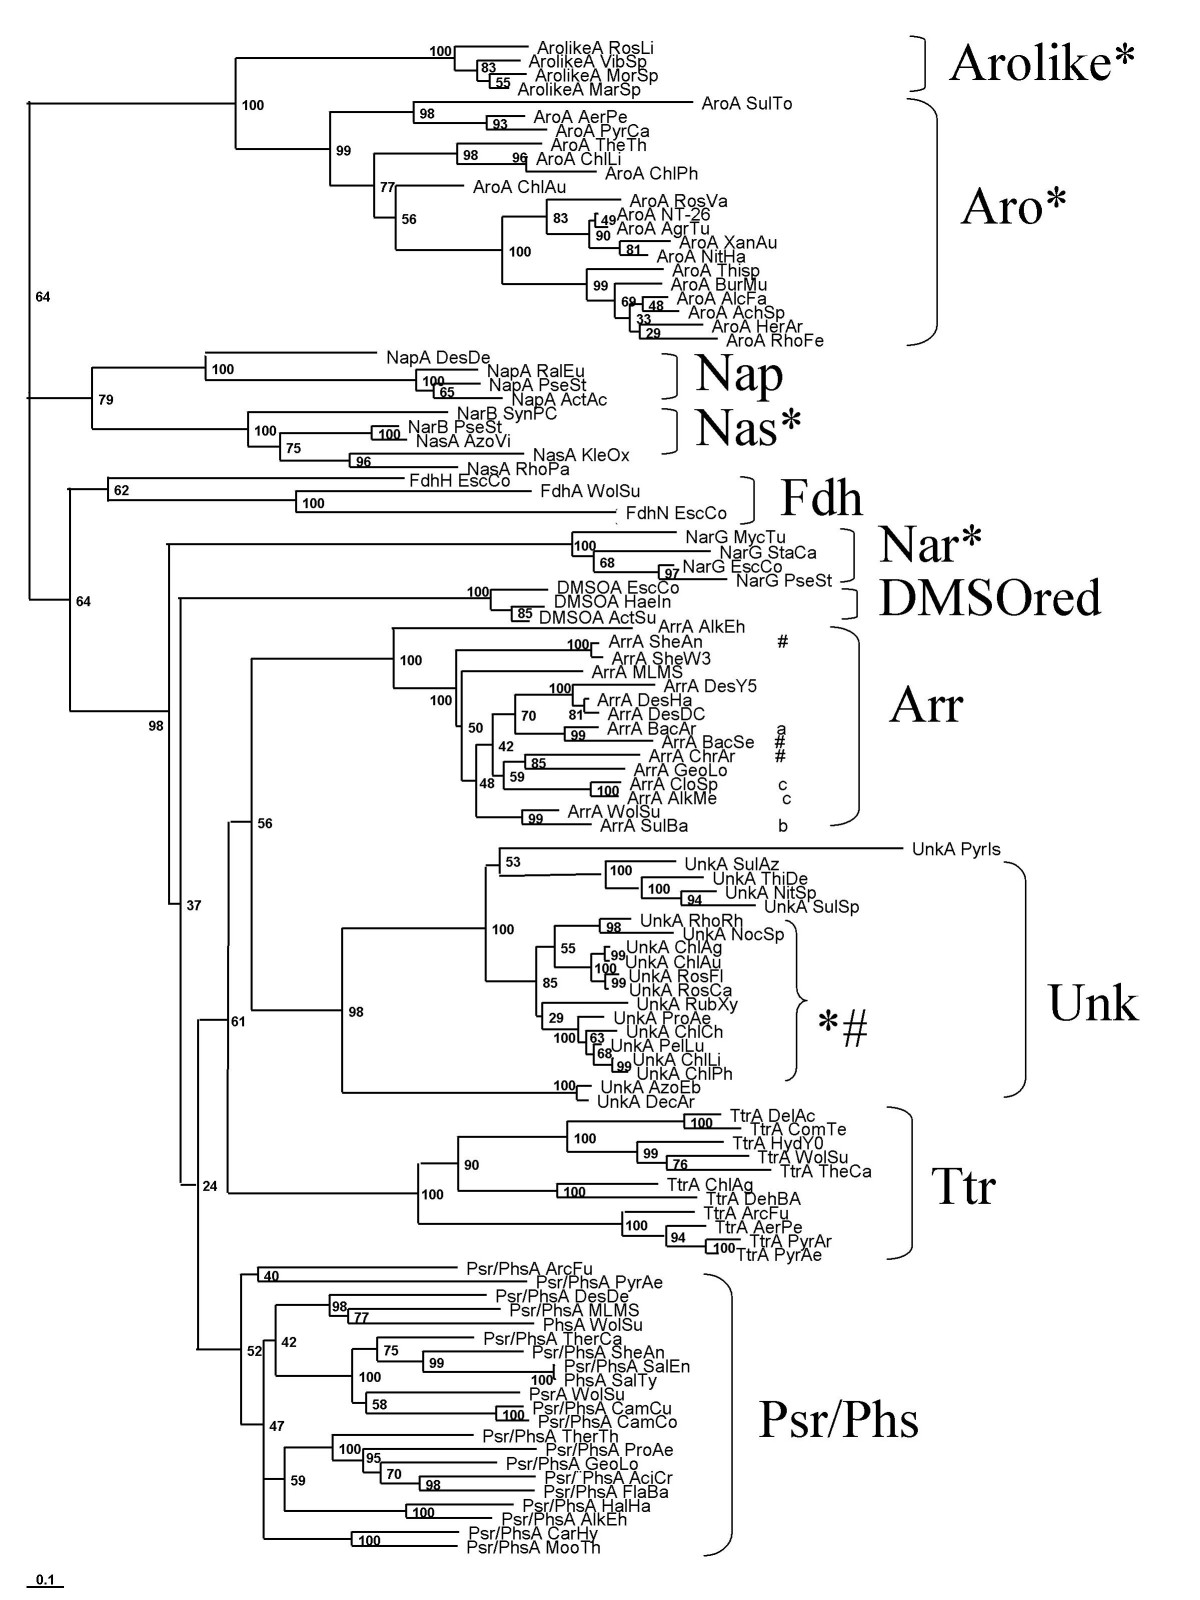 http://static-content.springer.com/image/art%3A10.1186%2F1471-2148-8-206/MediaObjects/12862_2008_Article_775_Fig2_HTML.jpg